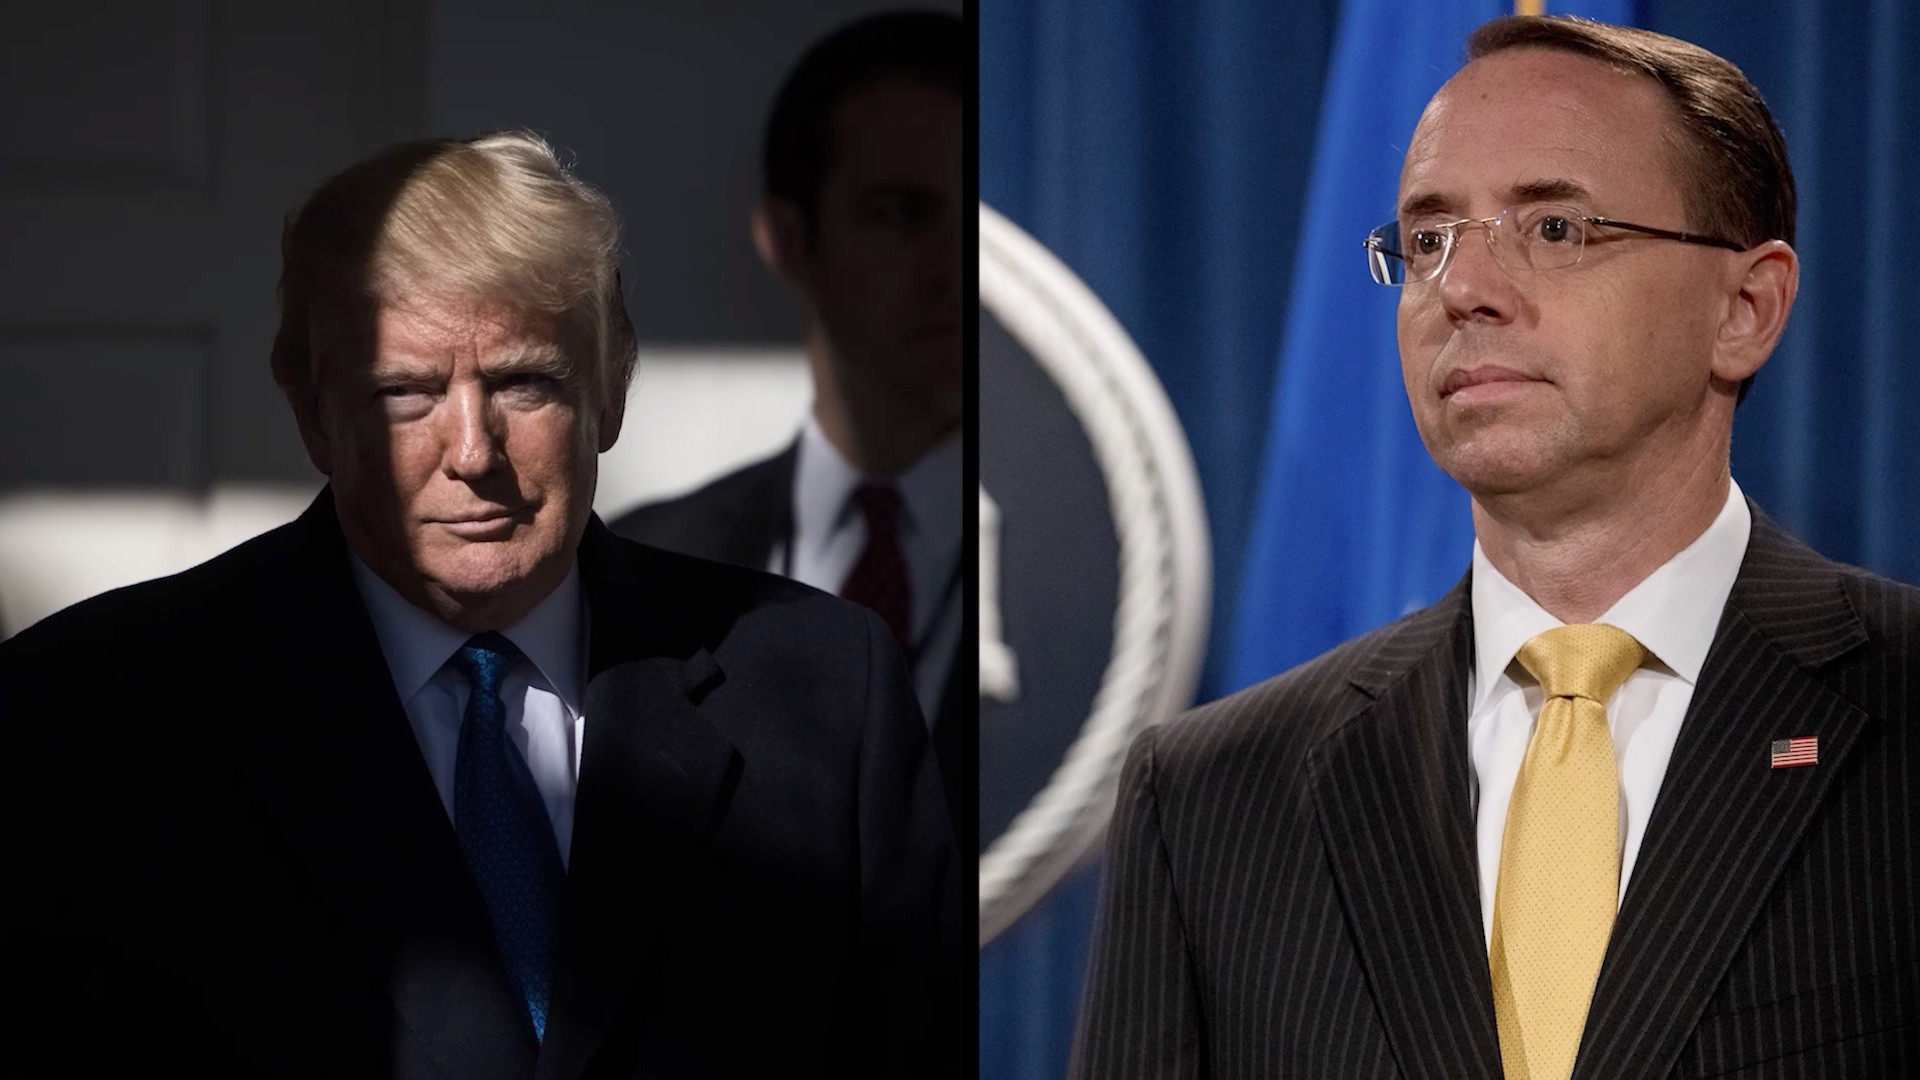 Trump says he expects to be 'treated very fairly' in Russia probe, has no plans to fire Rosenstein